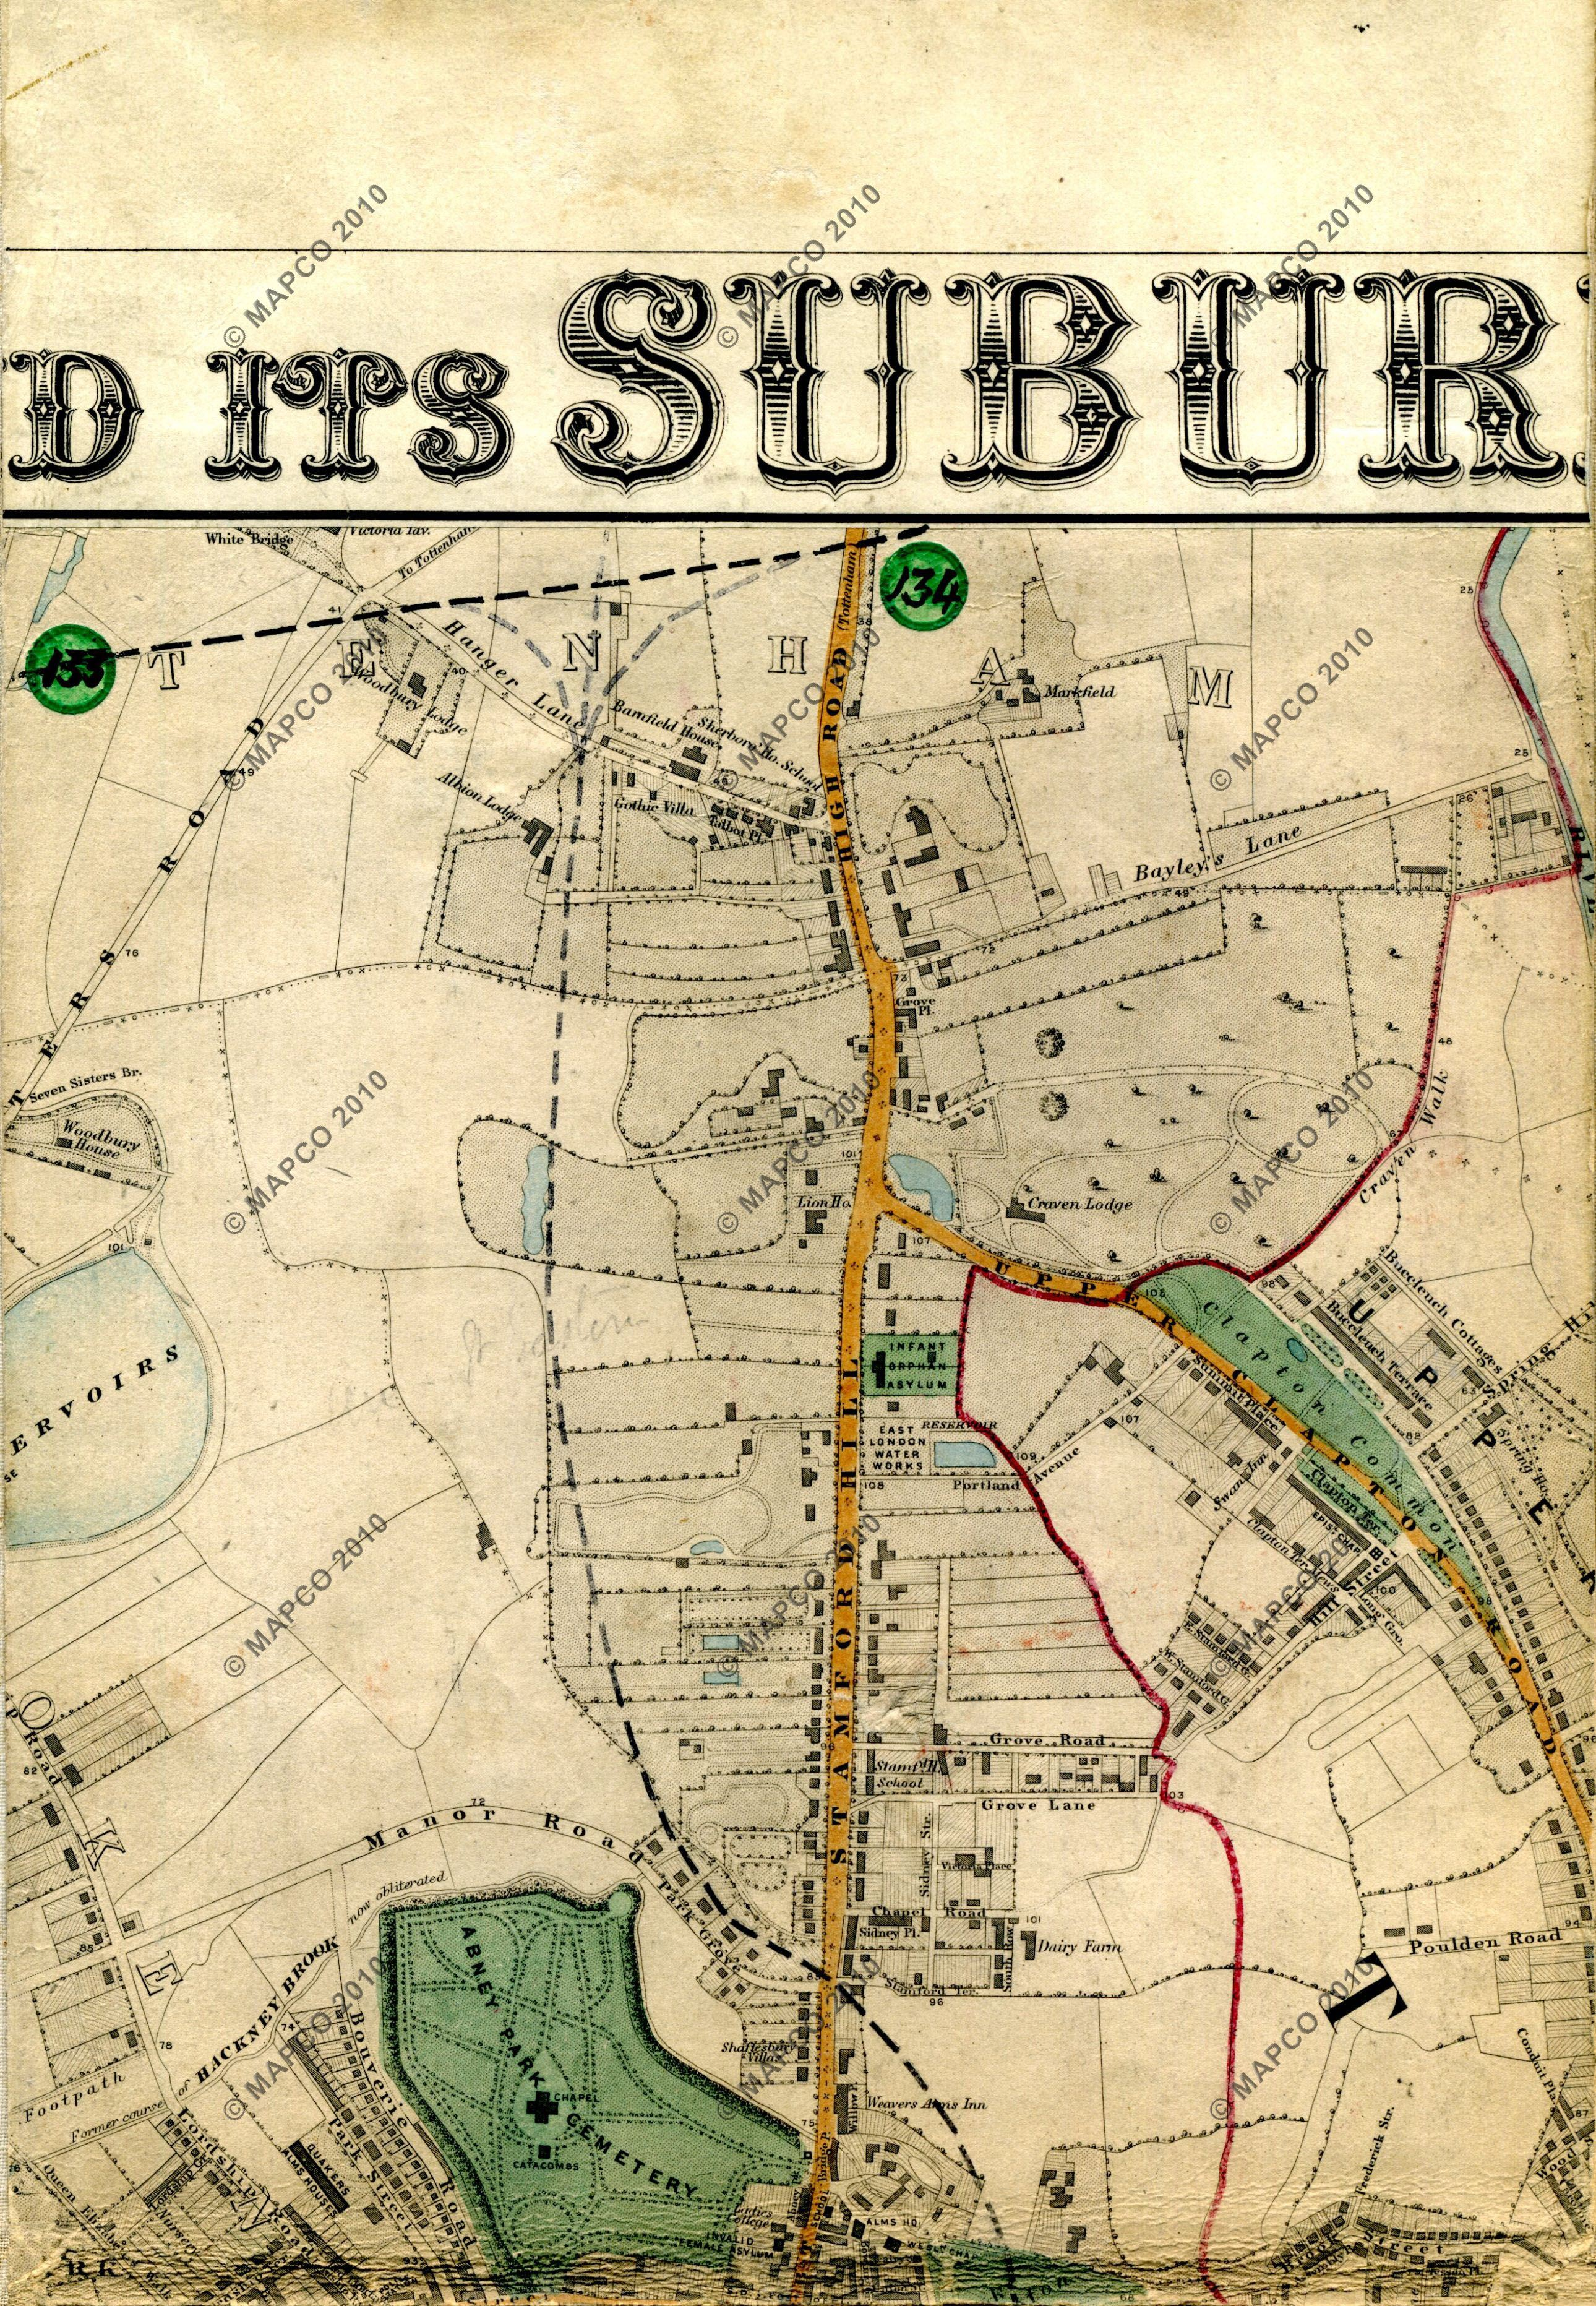 London Map Suburbs.Stanford S Library Map Of London And Its Suburbs 1864 With Railway